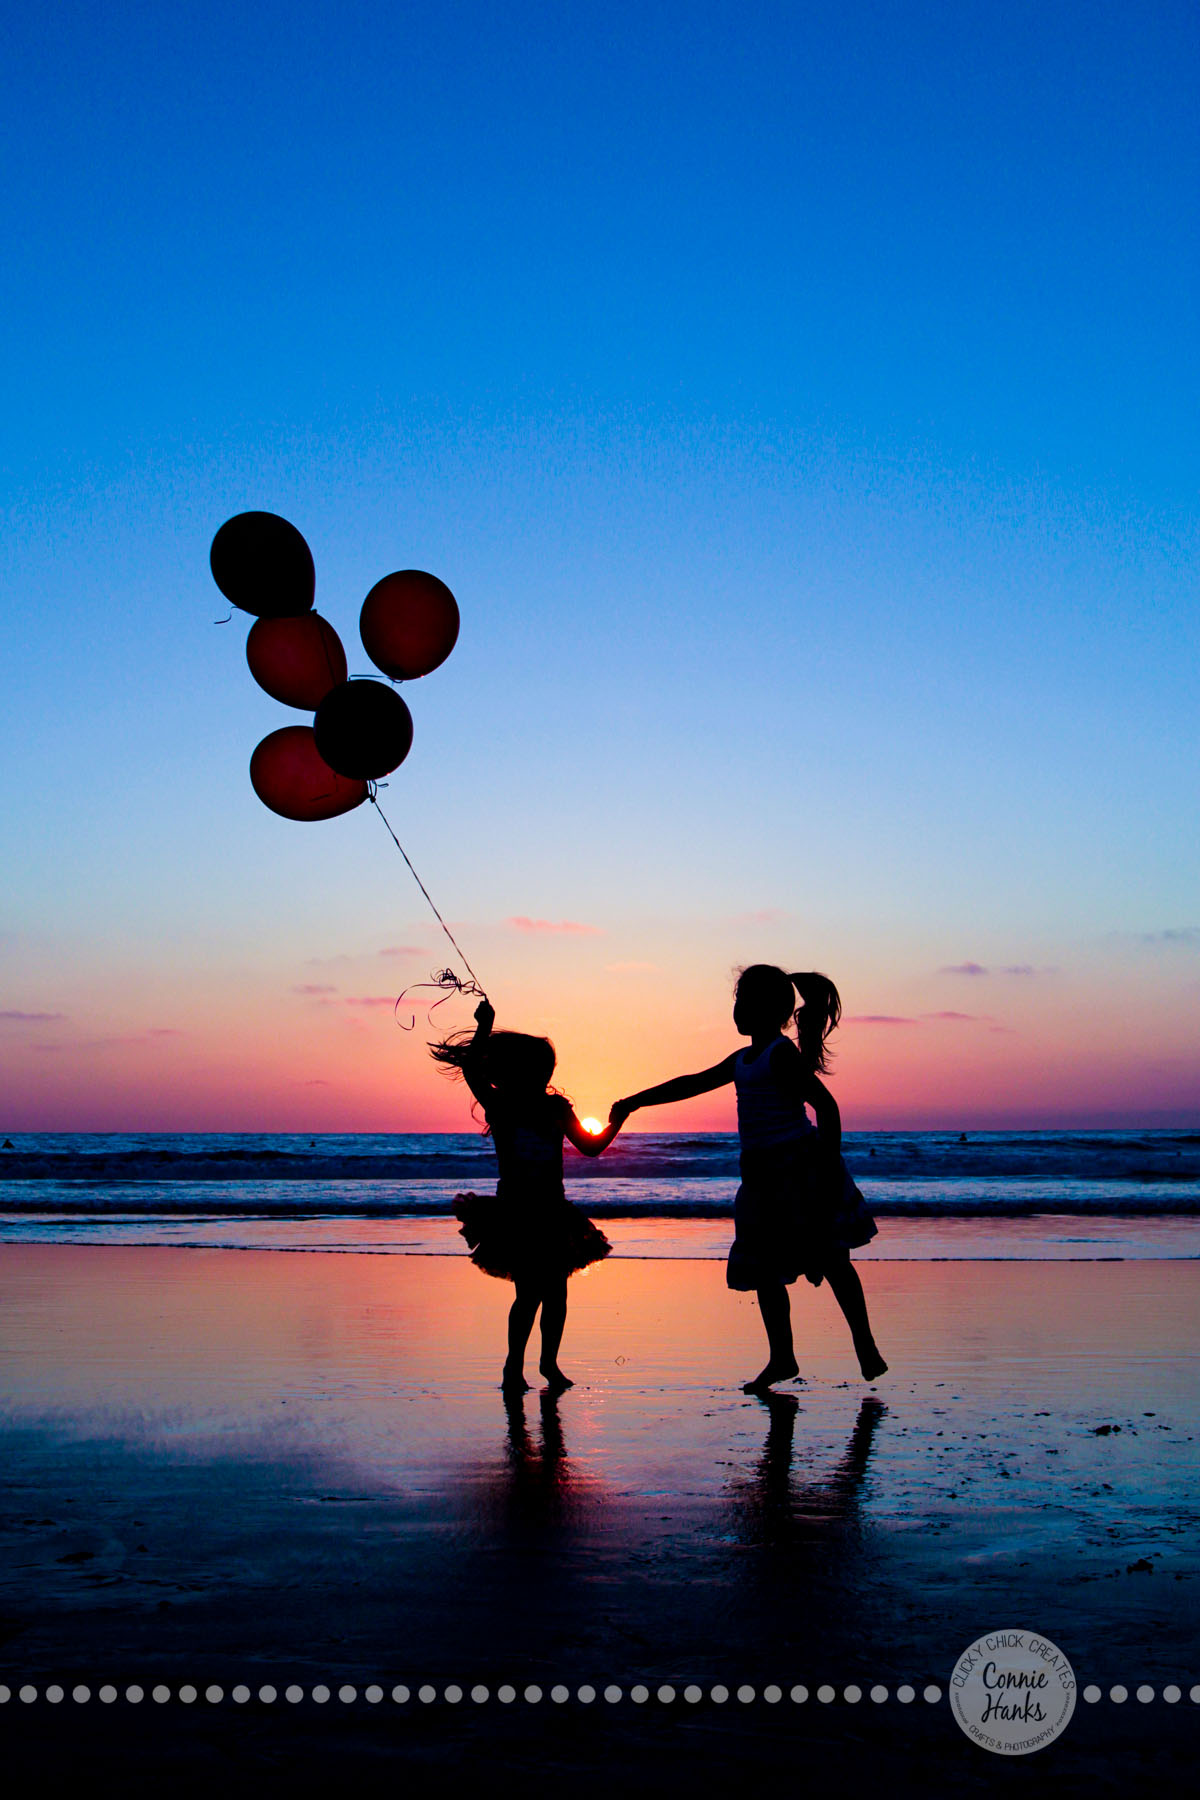 Connie hanks photography clickychickcreates com beach silhouettes with balloons